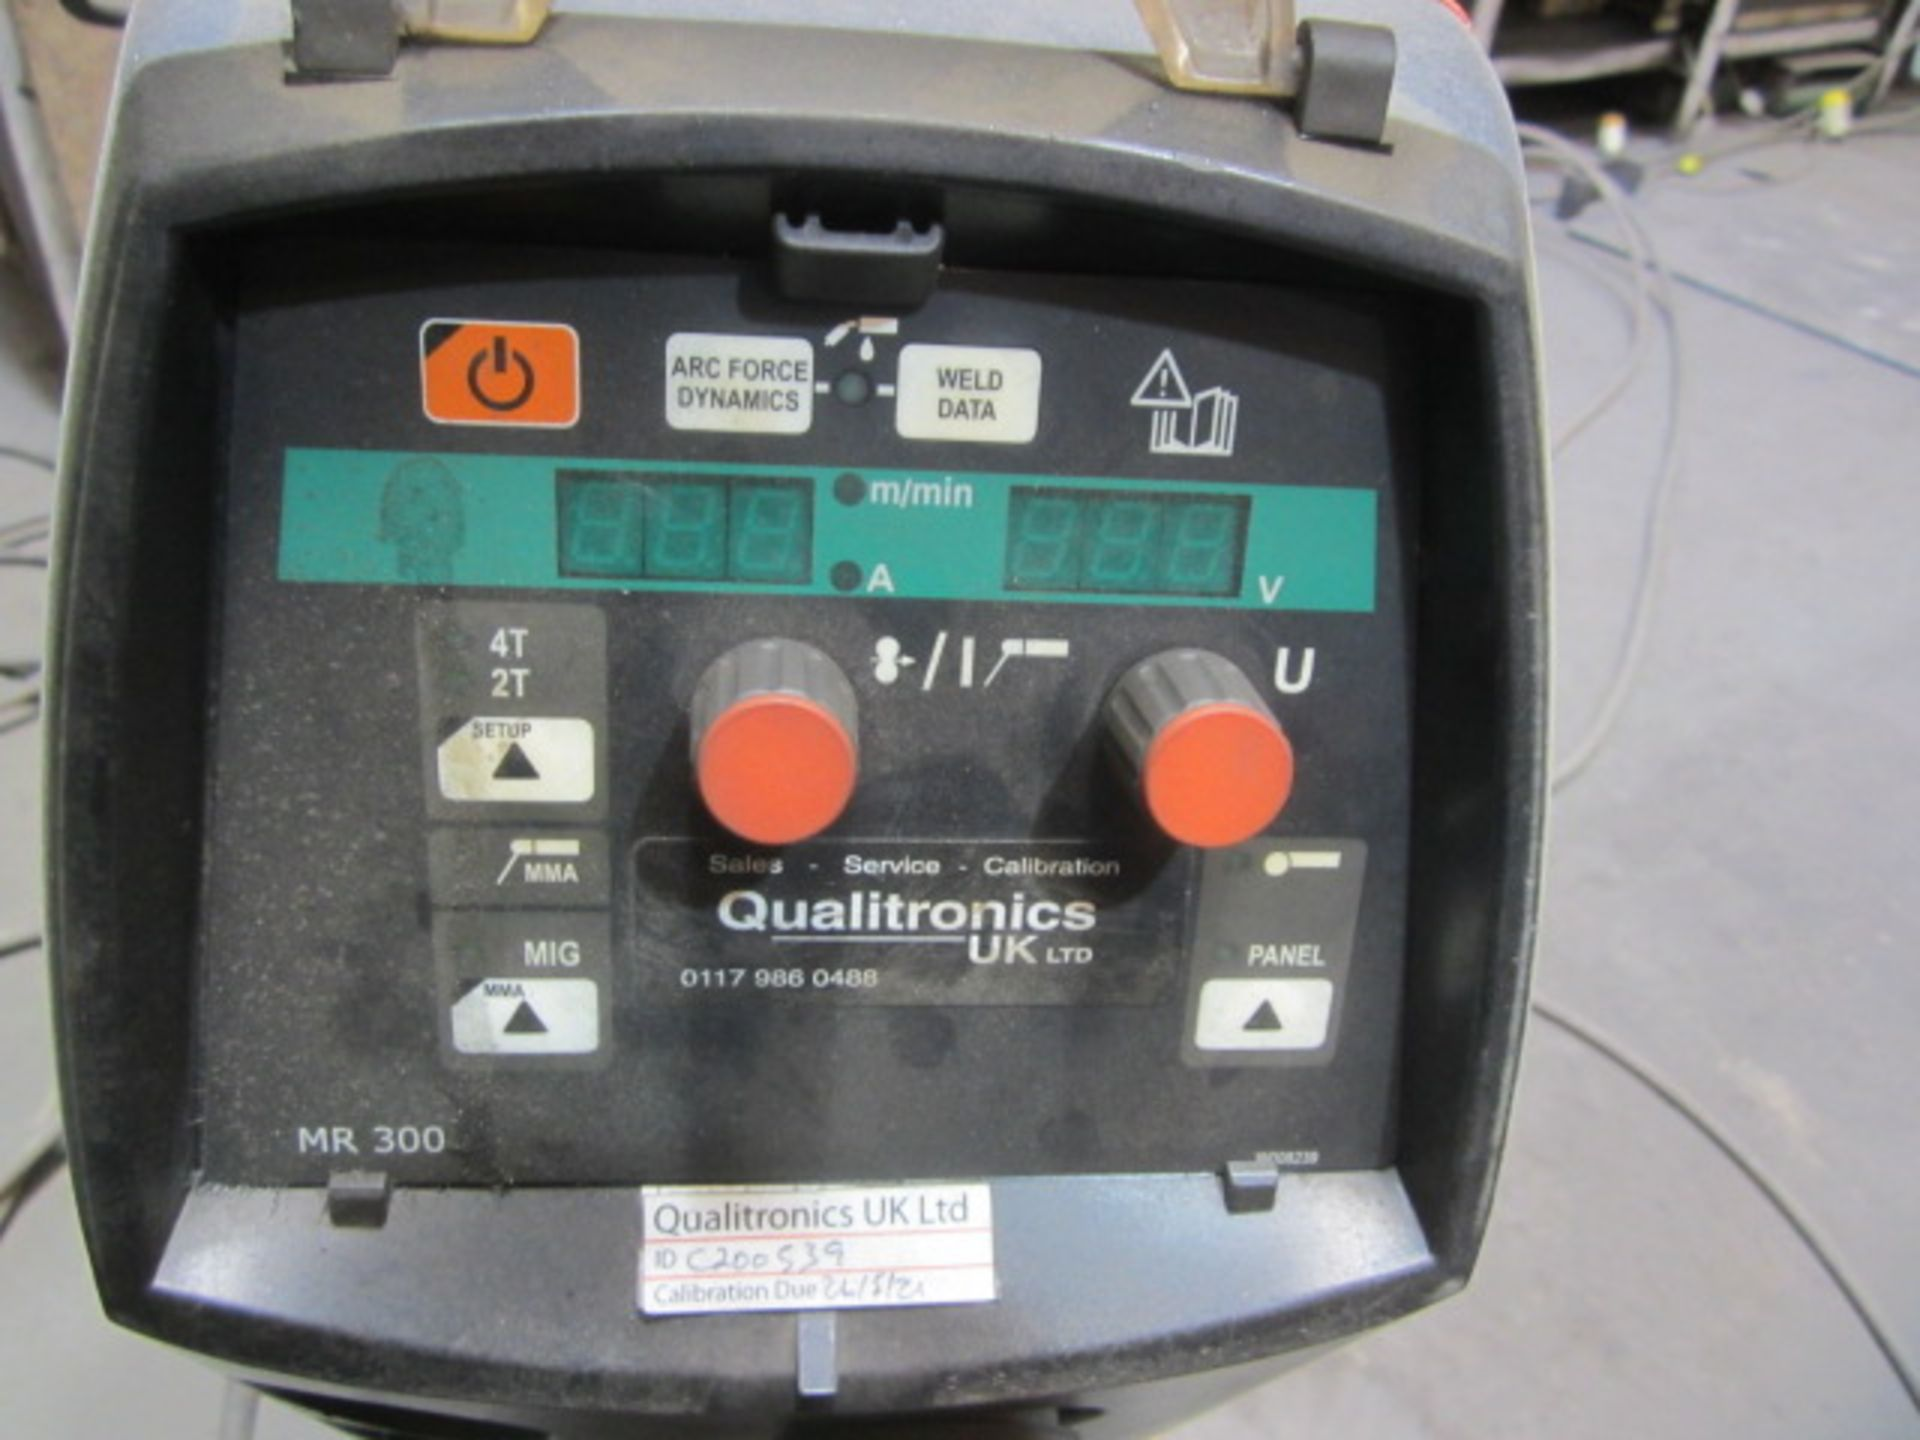 Kemppi Fast Mig M420 mig welder, serial no. 2674175, with Fast Mig MXF65 wire feeder, serial no. - Image 3 of 7